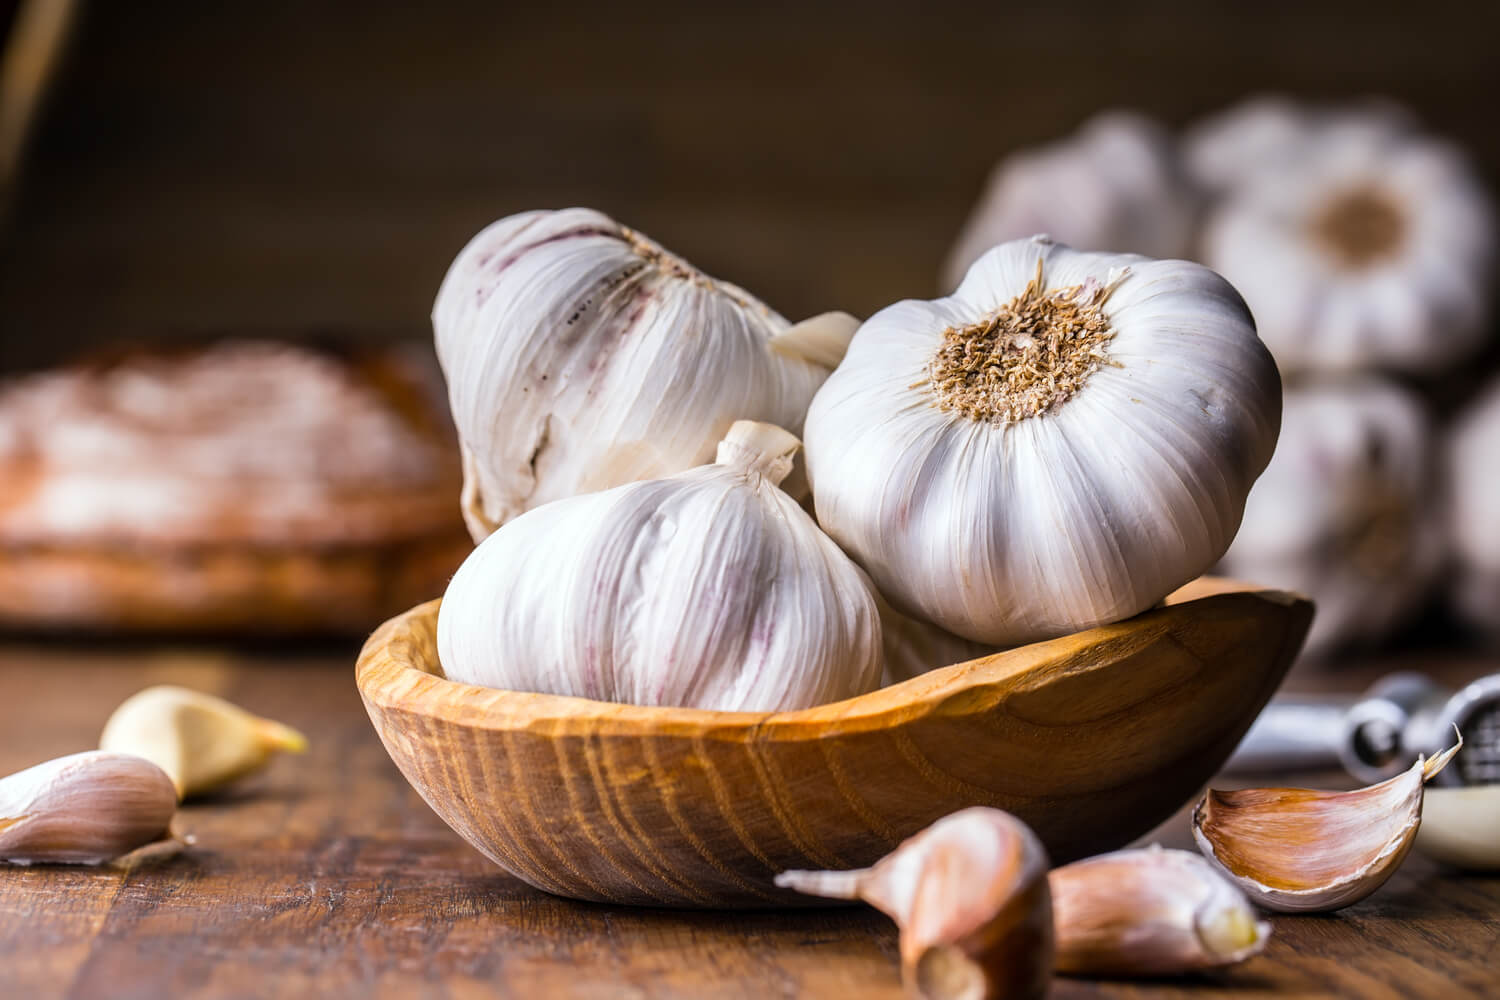 Garlic for Fertility – Does It Really Help?